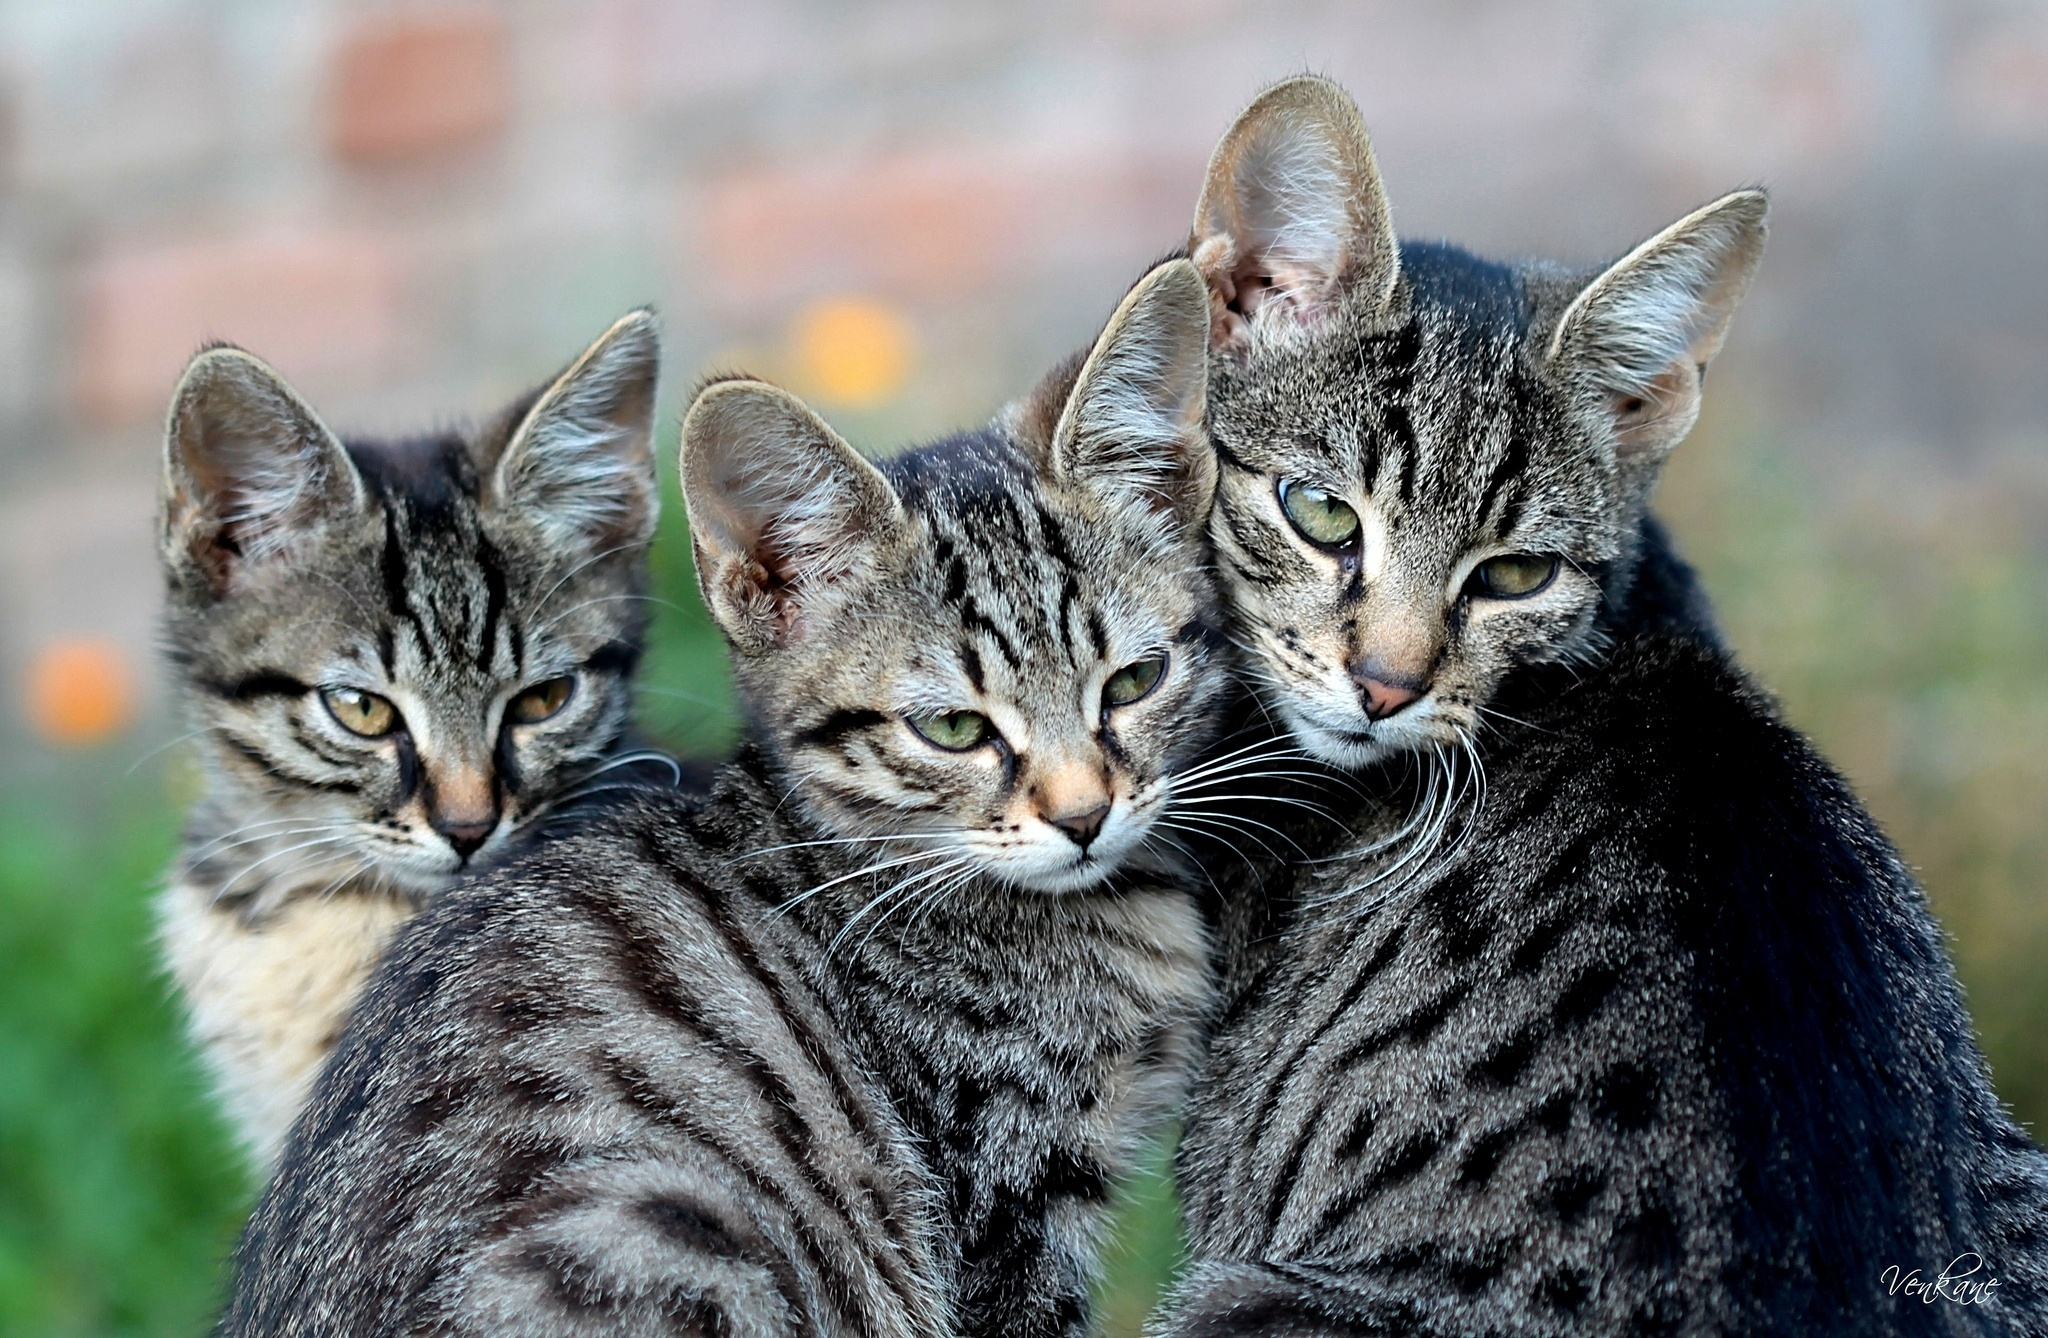 126820 Screensavers and Wallpapers Kittens for phone. Download Animals, Cat, Sight, Opinion, Kittens pictures for free